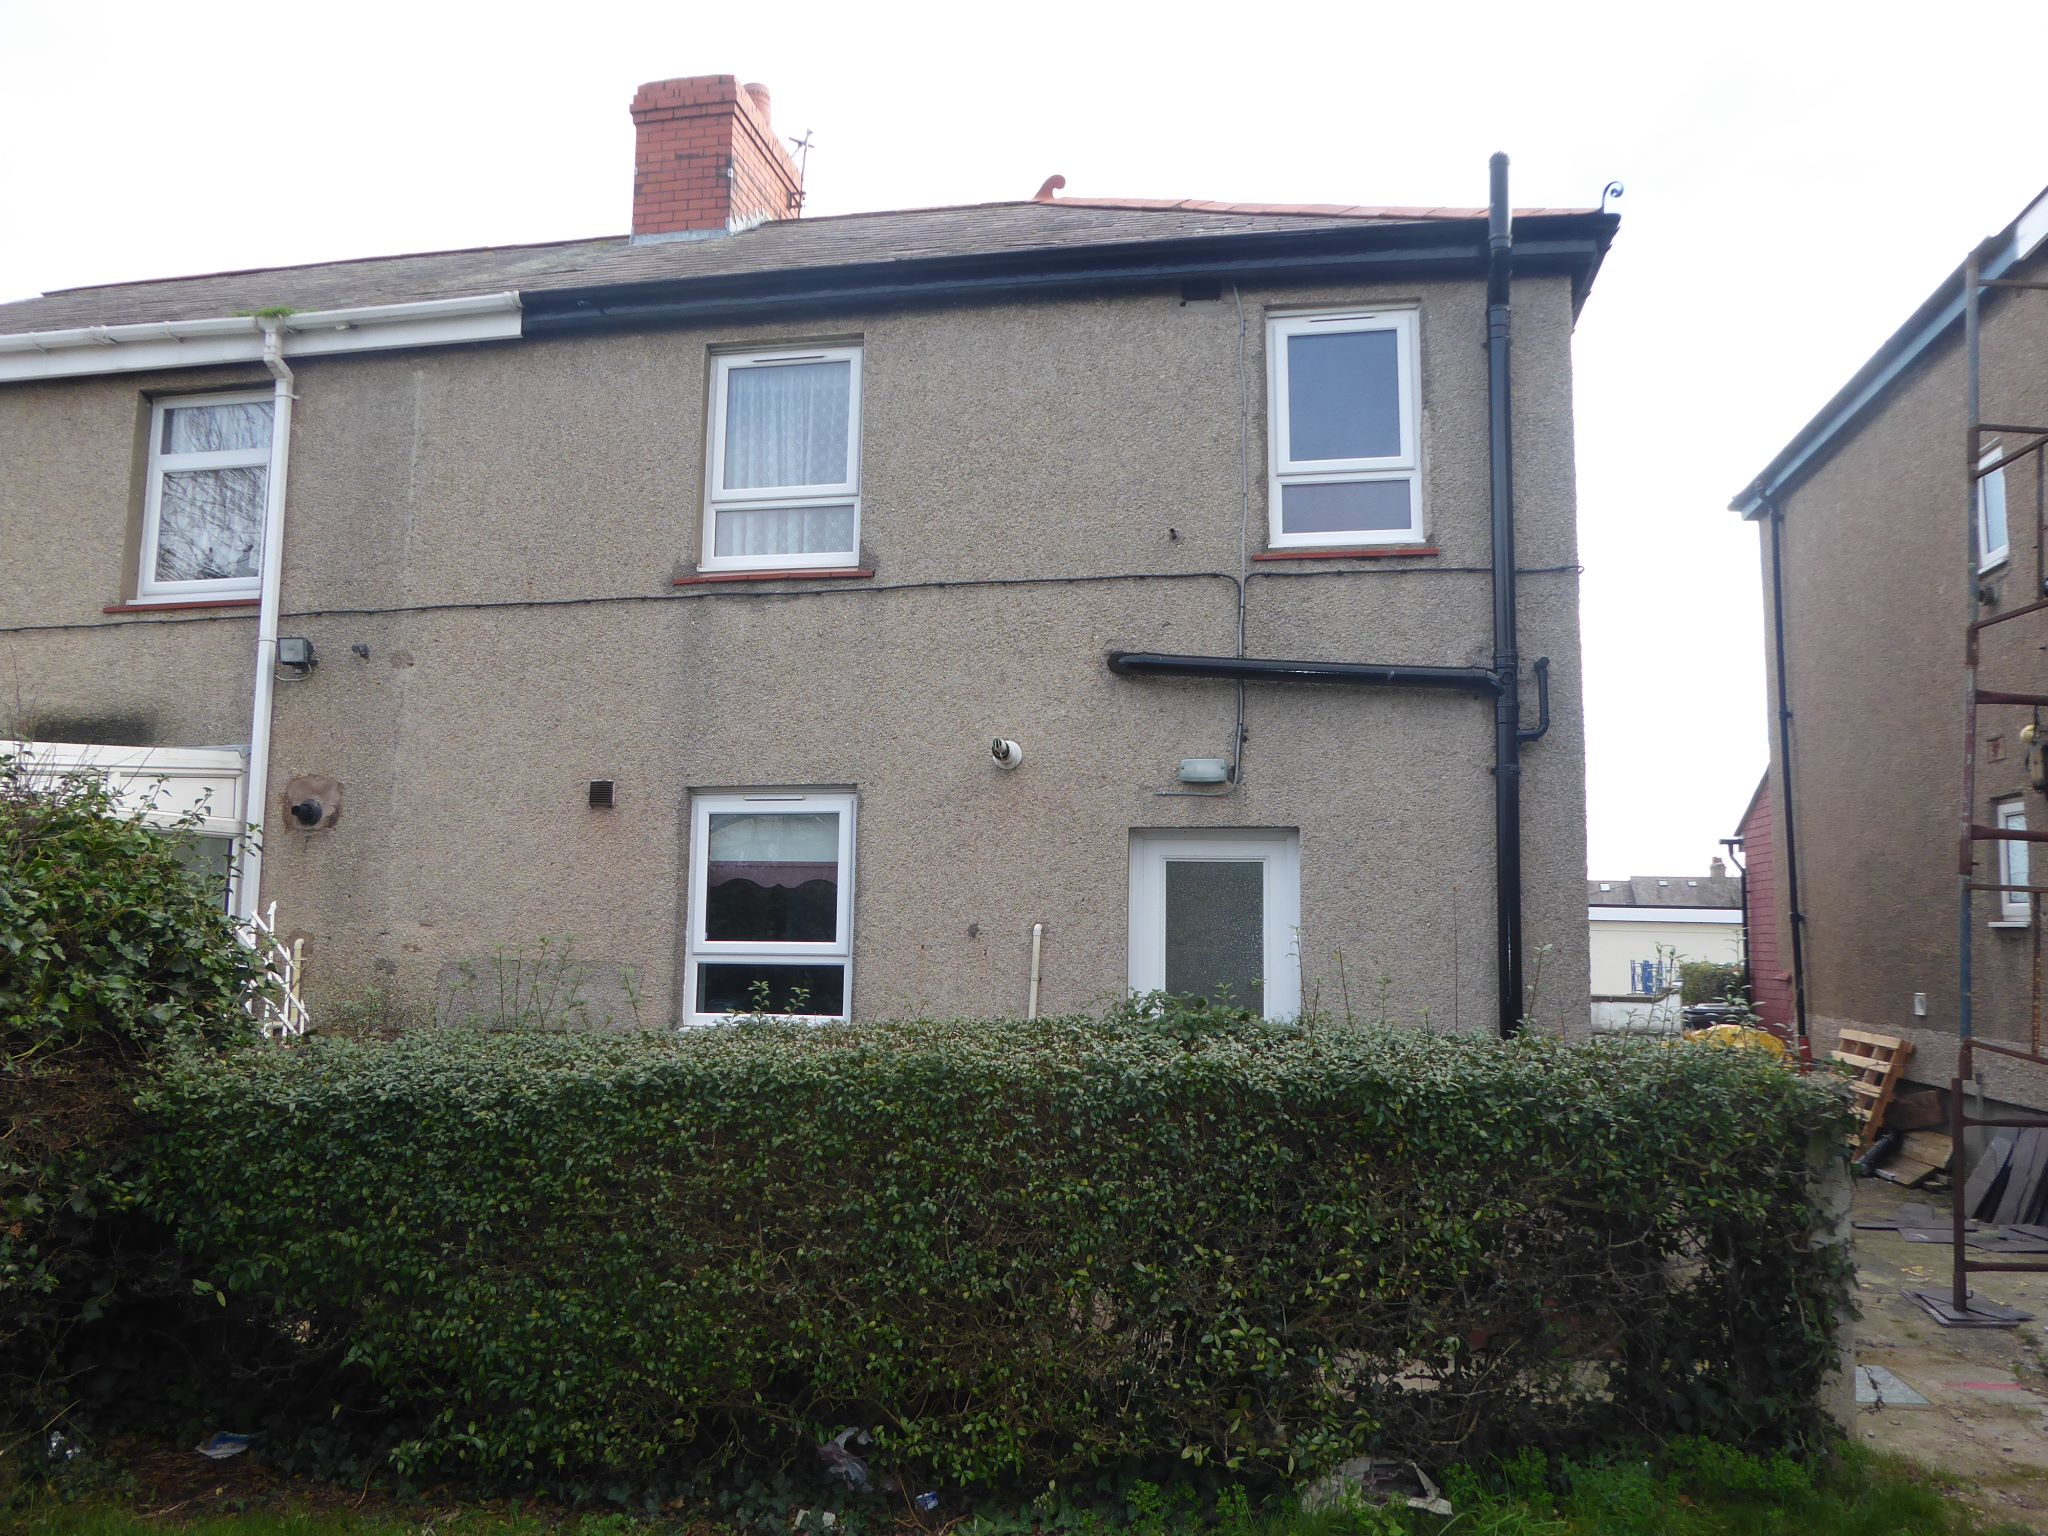 3 bedroom end terraced house SSTC in Abergele - Photograph 13